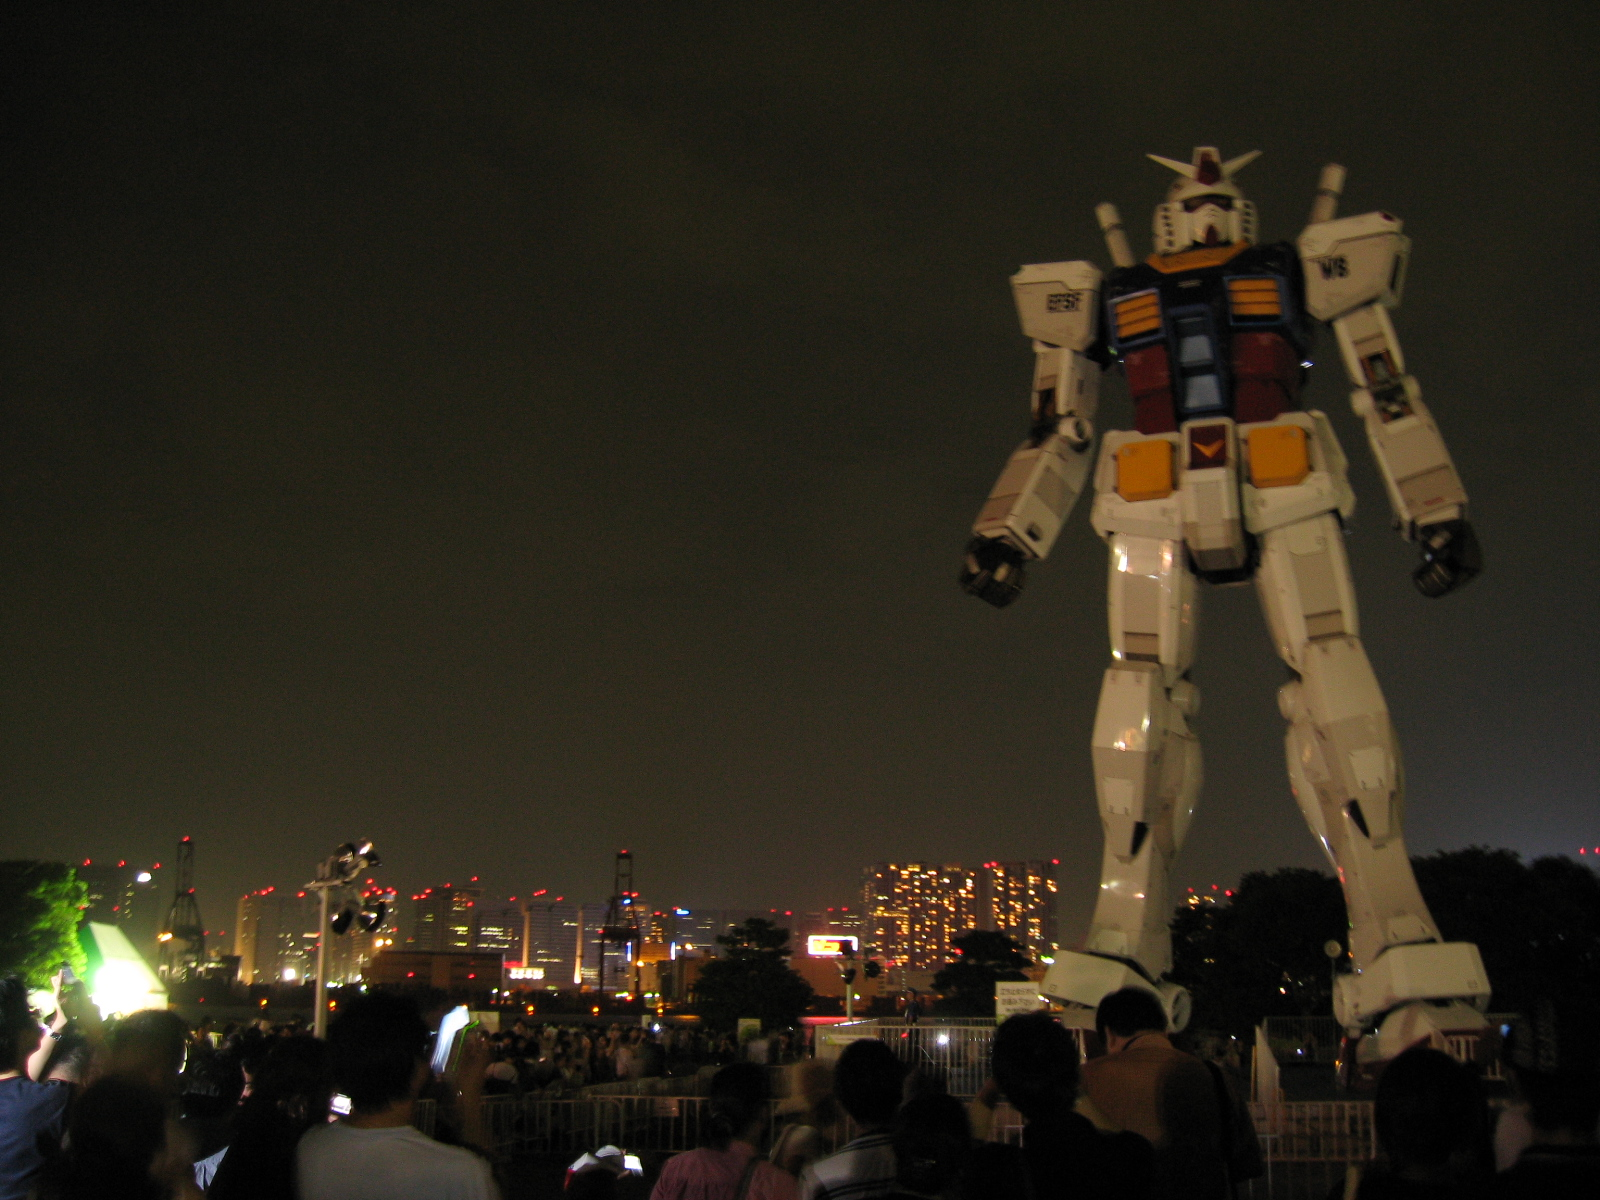 The giant Gundam statue on Odaiba Island